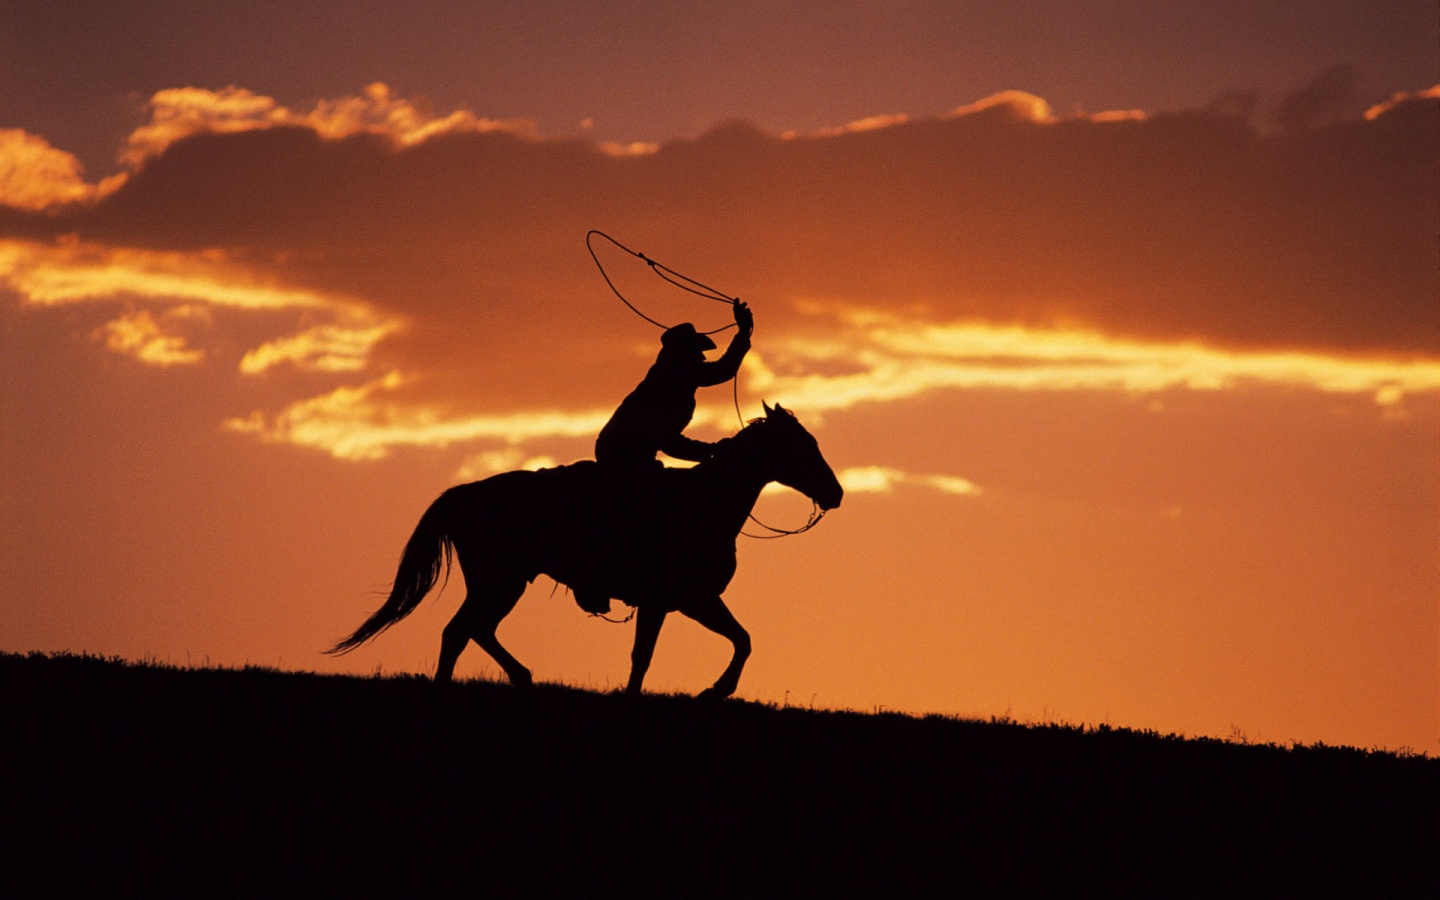 Western Cowboy at Sunset Wallpapers HD Wallpapers 1440x900